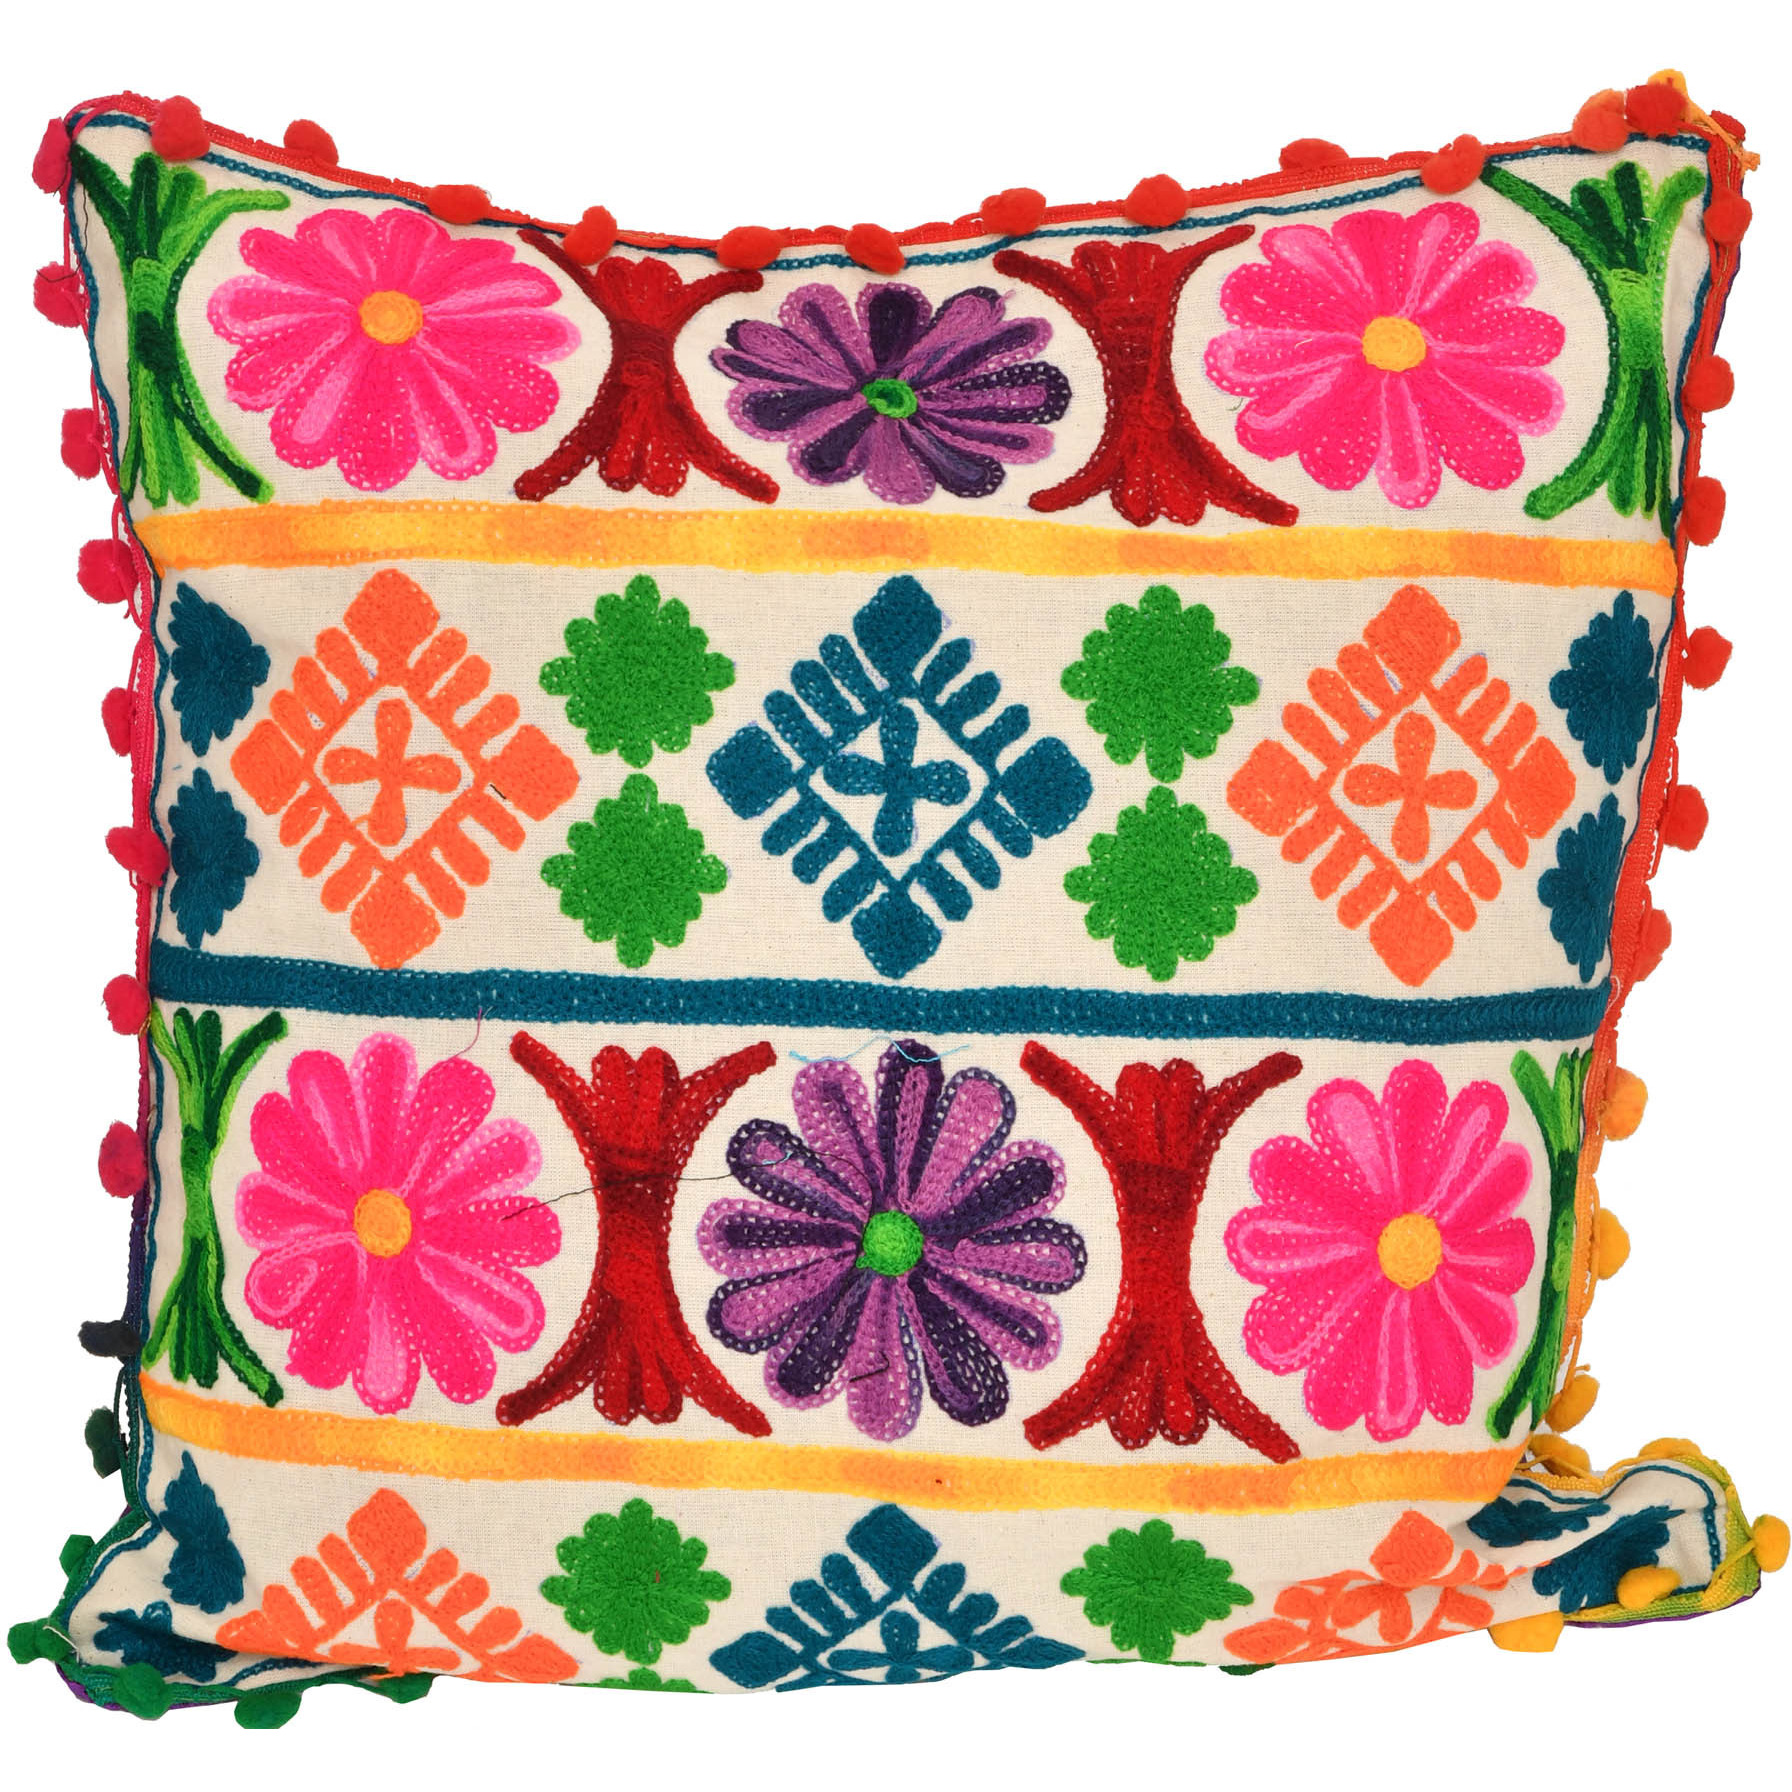 Off-White Cushion Cover with Ari-Embroidey in Multi-color Thread